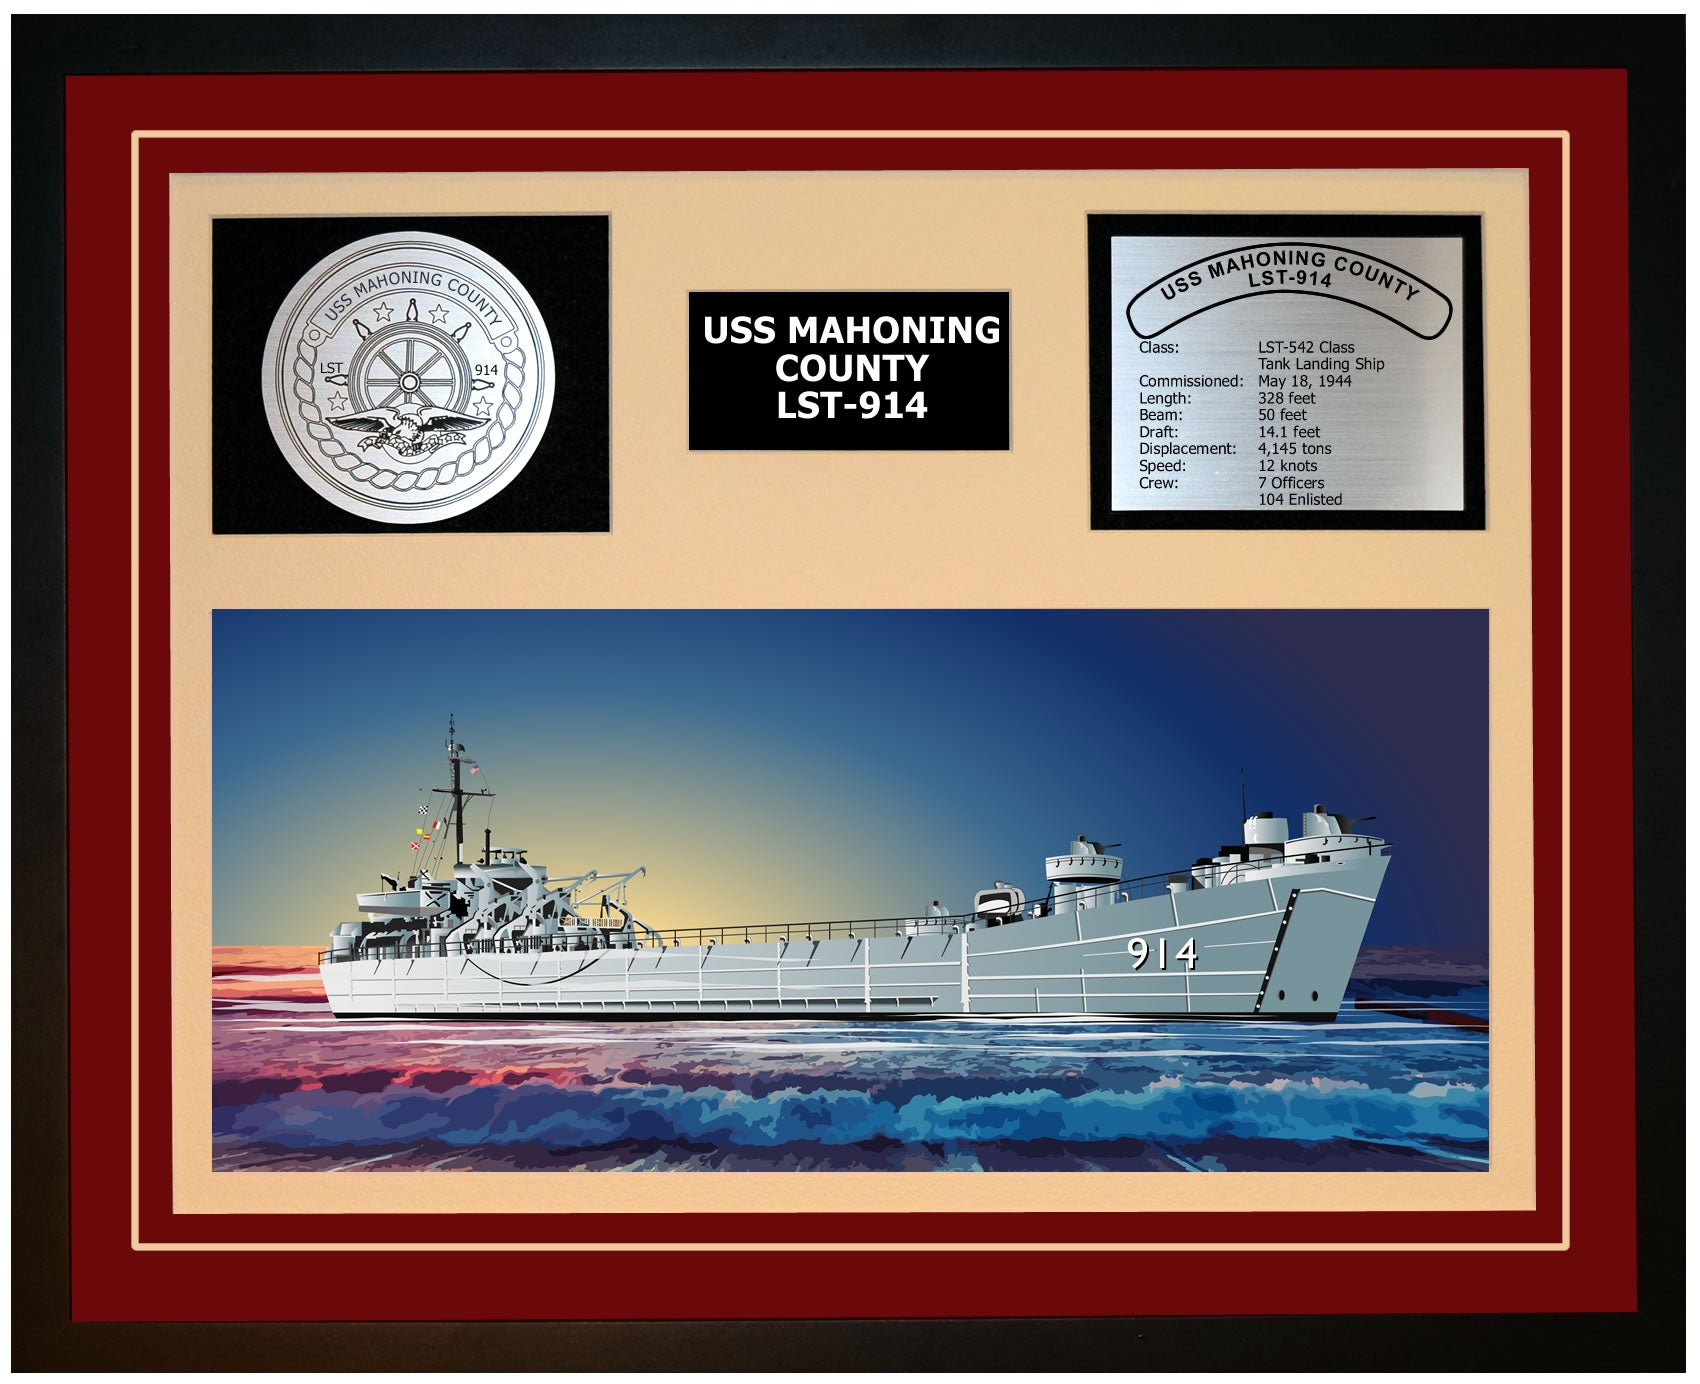 USS MAHONING COUNTY LST-914 Framed Navy Ship Display Burgundy